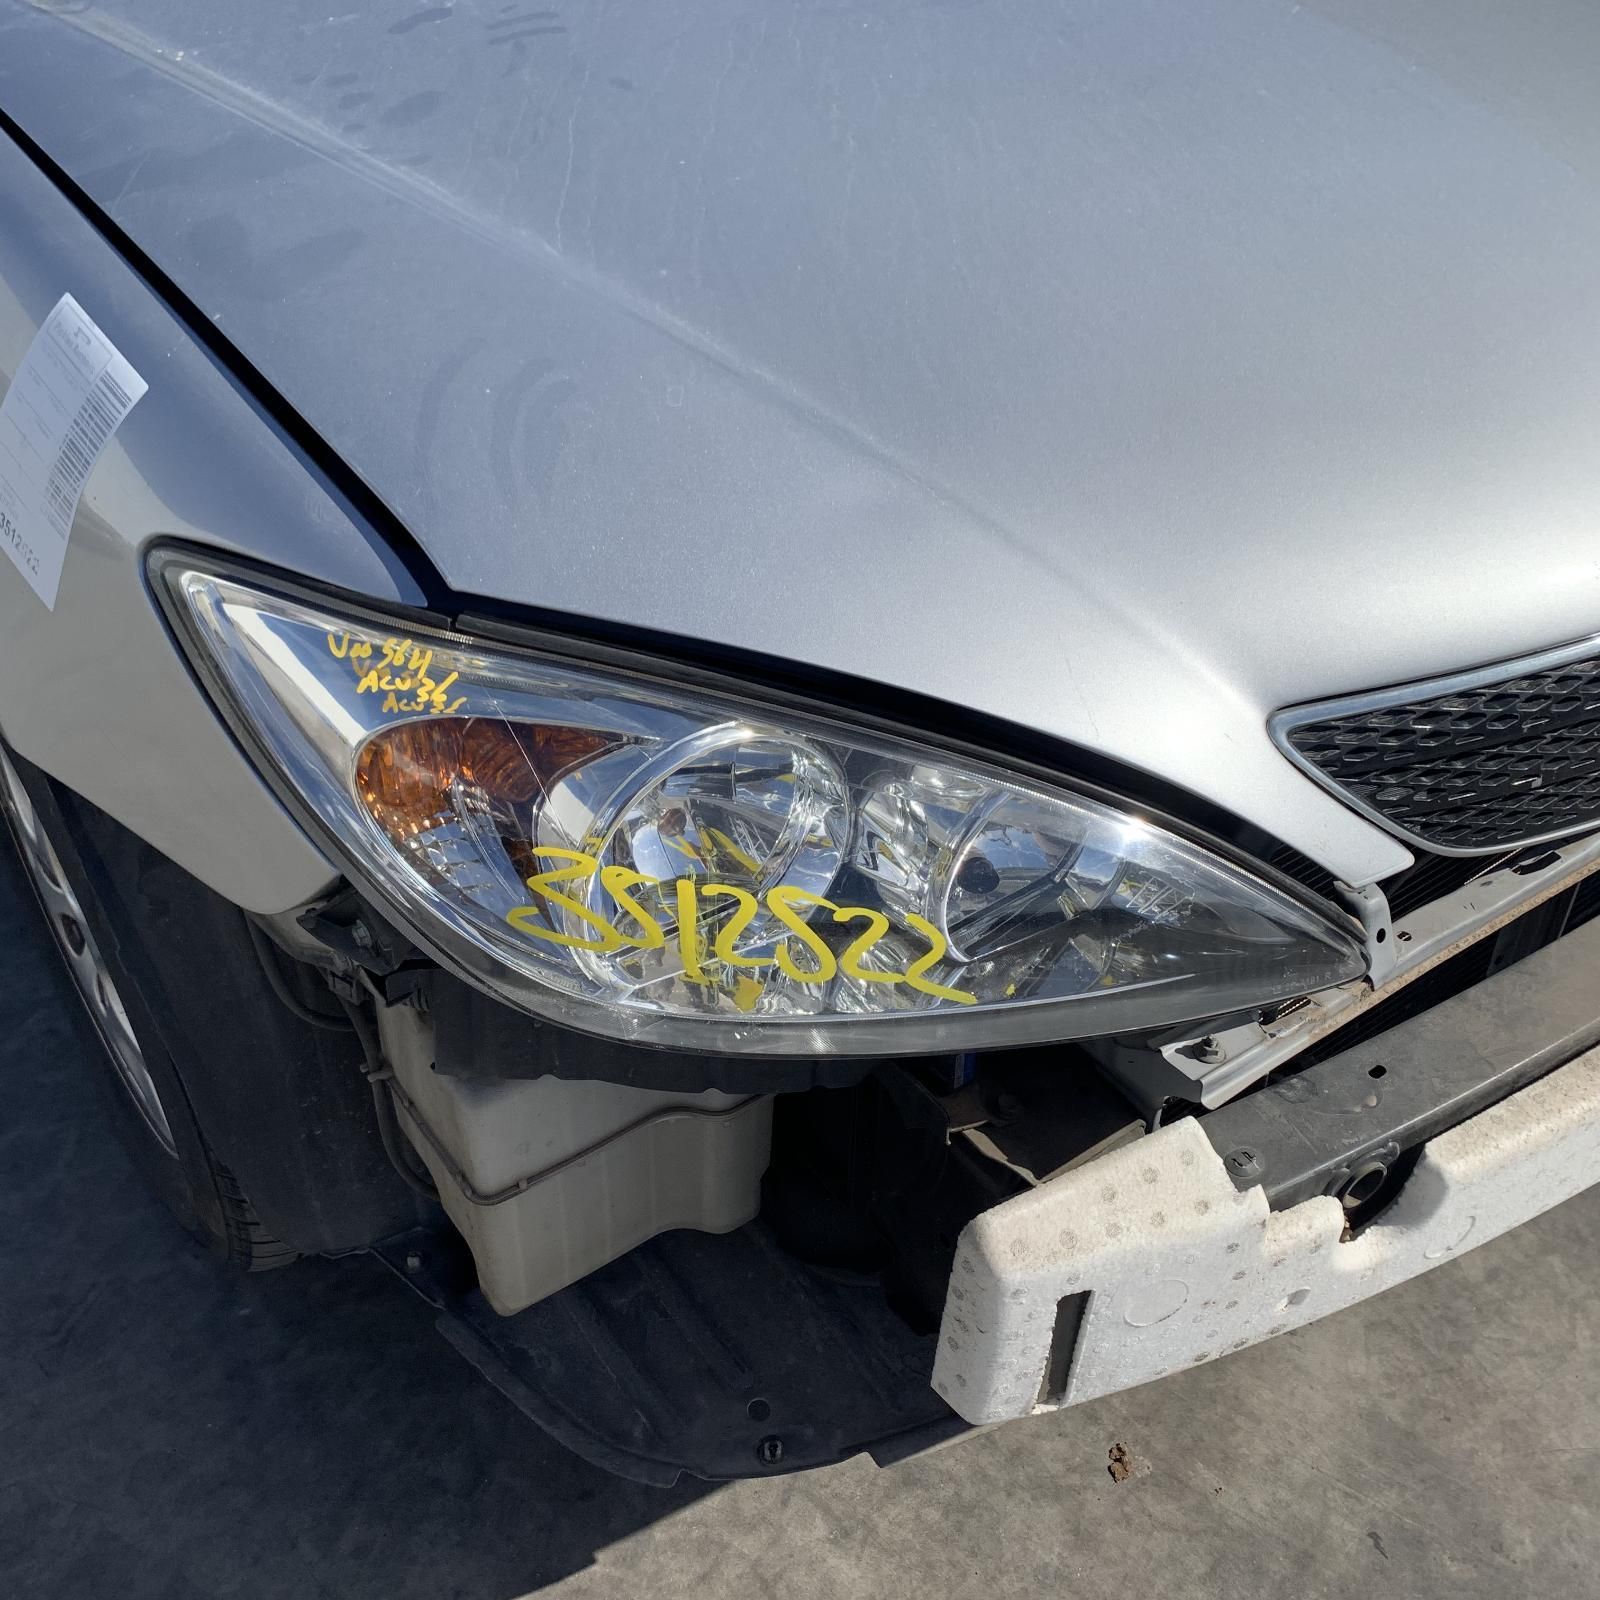 TOYOTA CAMRY, Right Headlamp, SK36, ALTISE/ATEVA/AZURA, CHROME INSERT TYPE, 08/02-09/04